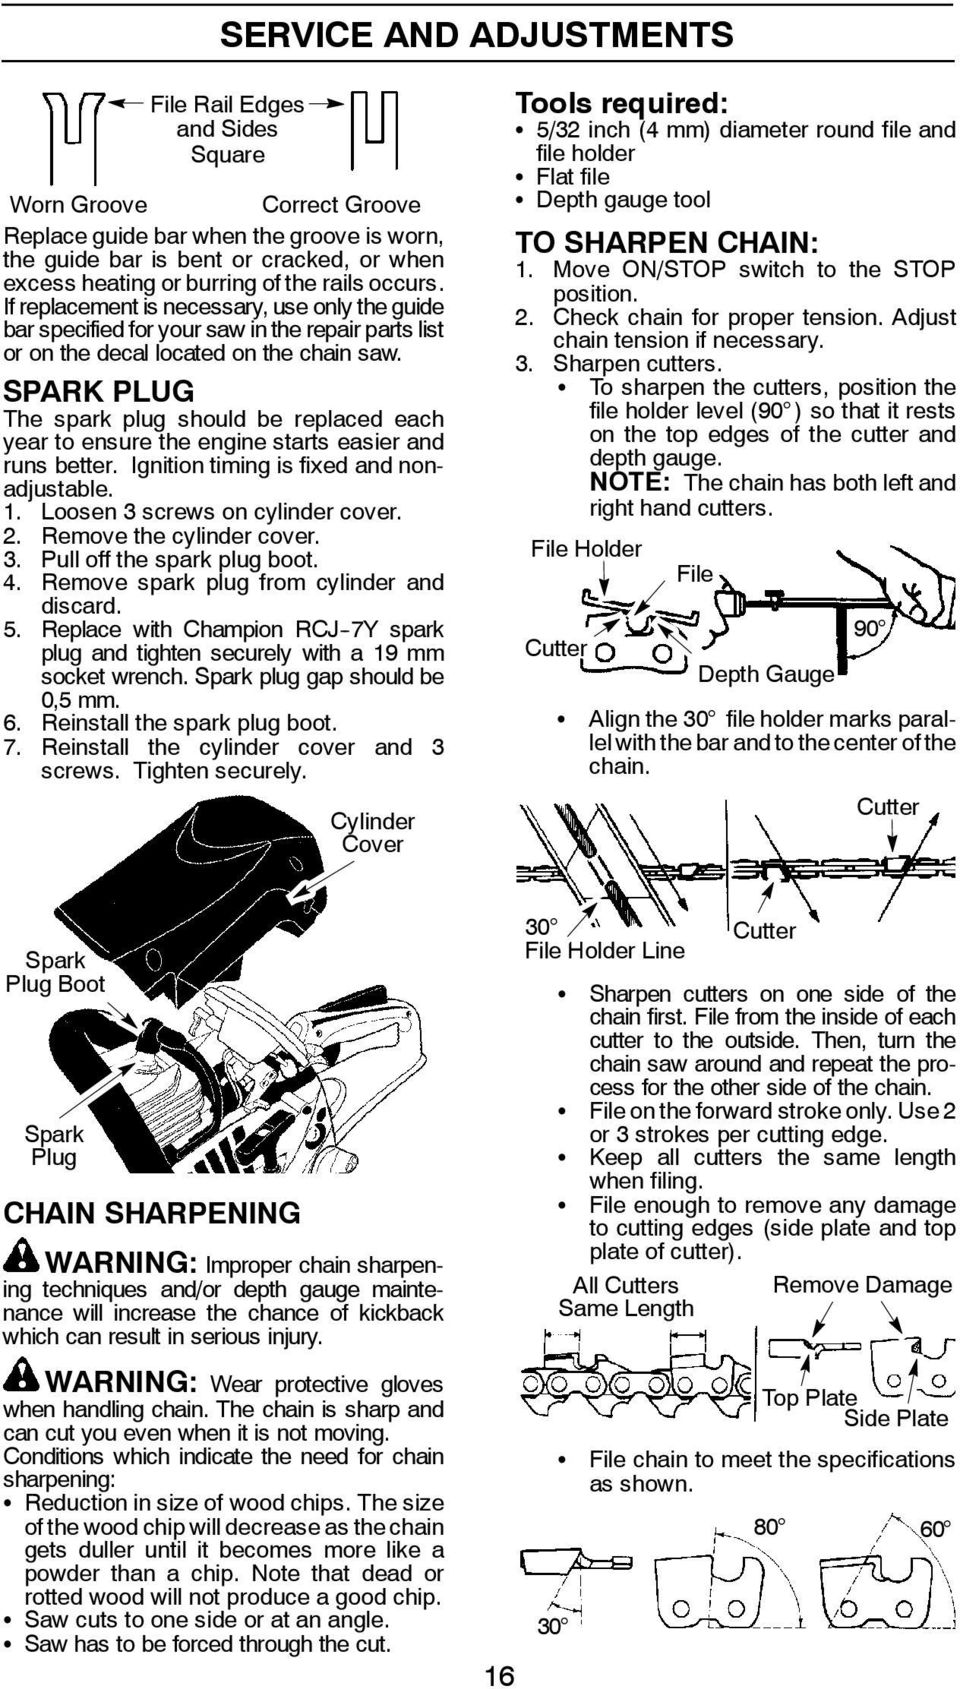 SPARK PLUG The spark plug should be replaced each year to ensure the engine starts easier and runs better. Ignition timing is fixed and nonadjustable. 1. Loosen 3 screws on cylinder cover. 2.